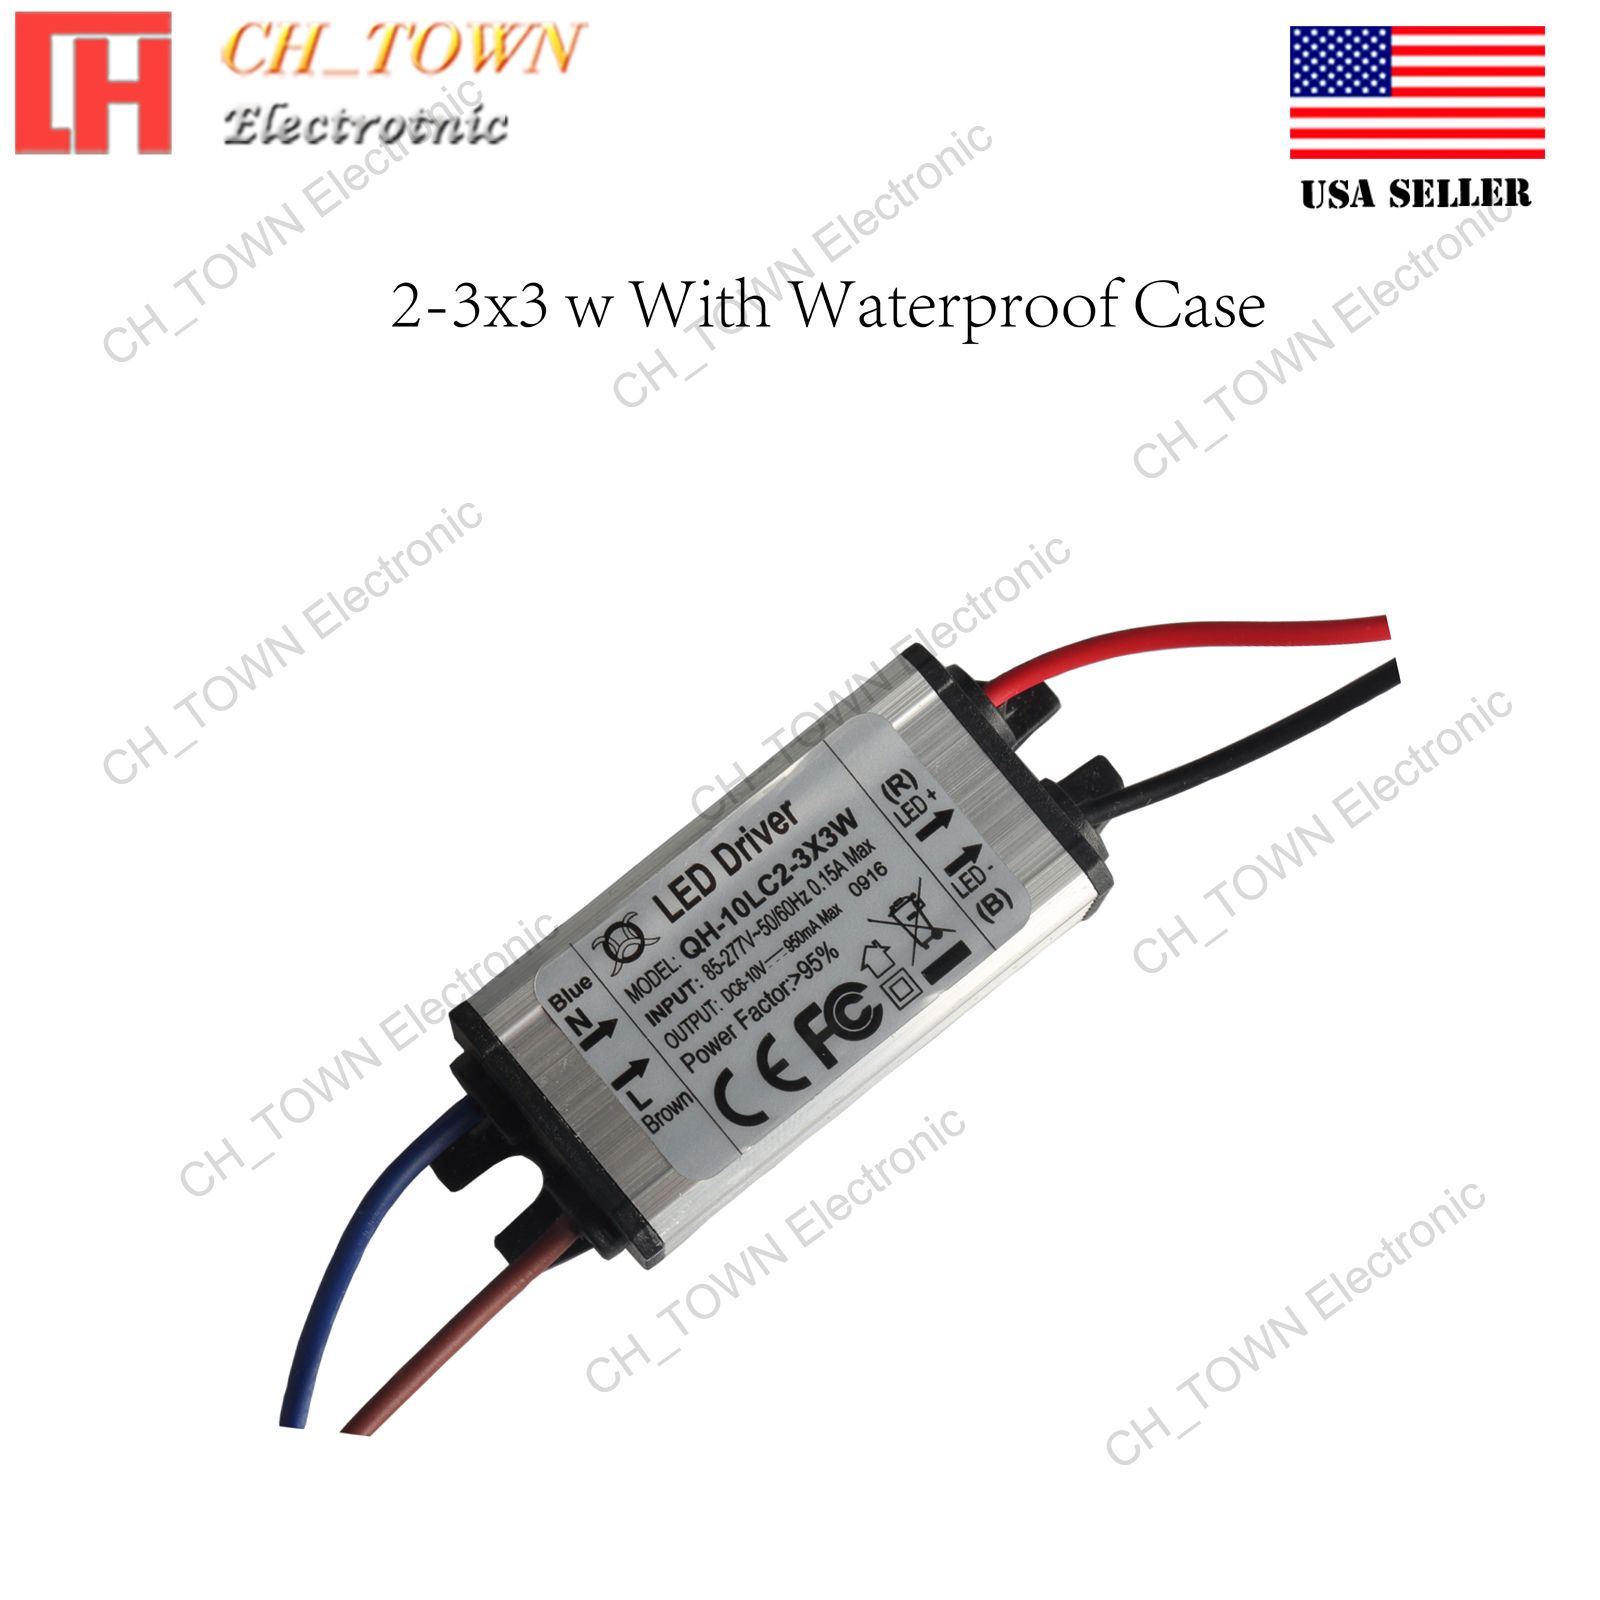 7 38 Constant Current Led Driver 10w Dc 6 10v 900ma Lamp Waterproof Power Supply Ebay Home Garden Led Ebay